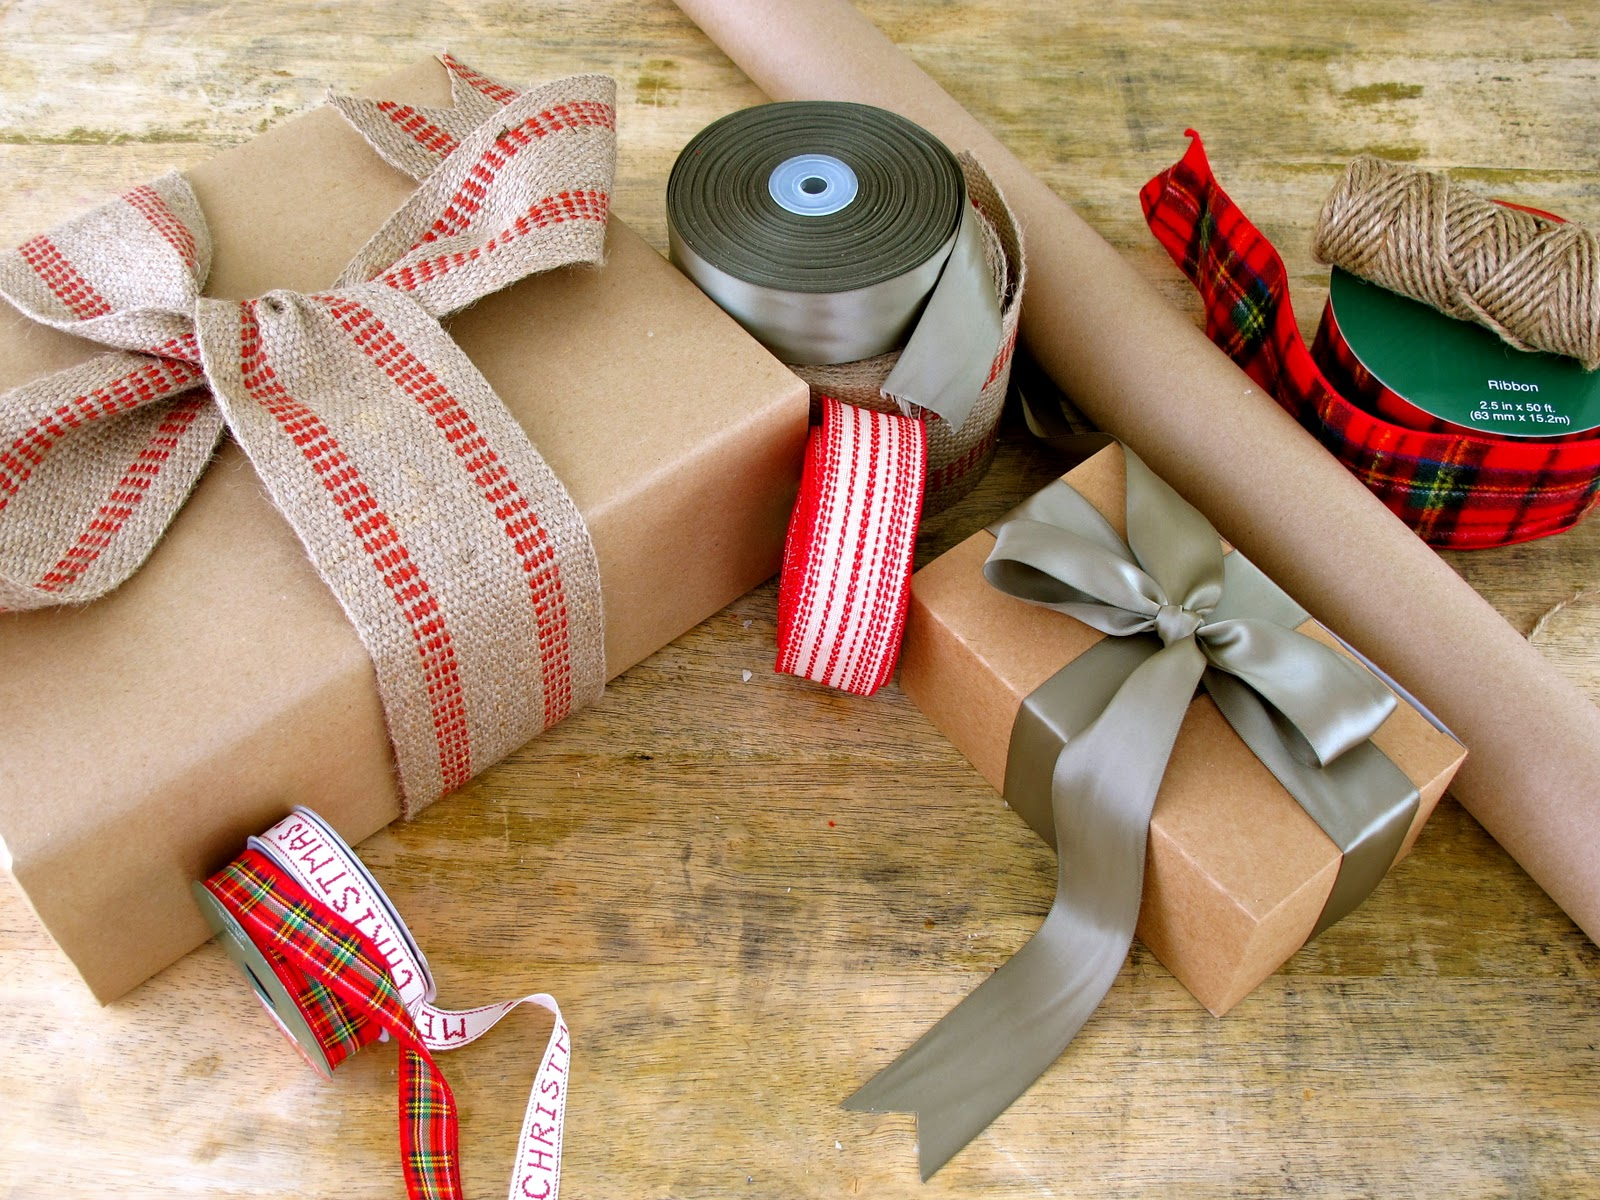 Jenny steffens hobick host a gift wrapping party for How to wrap presents with wrapping paper